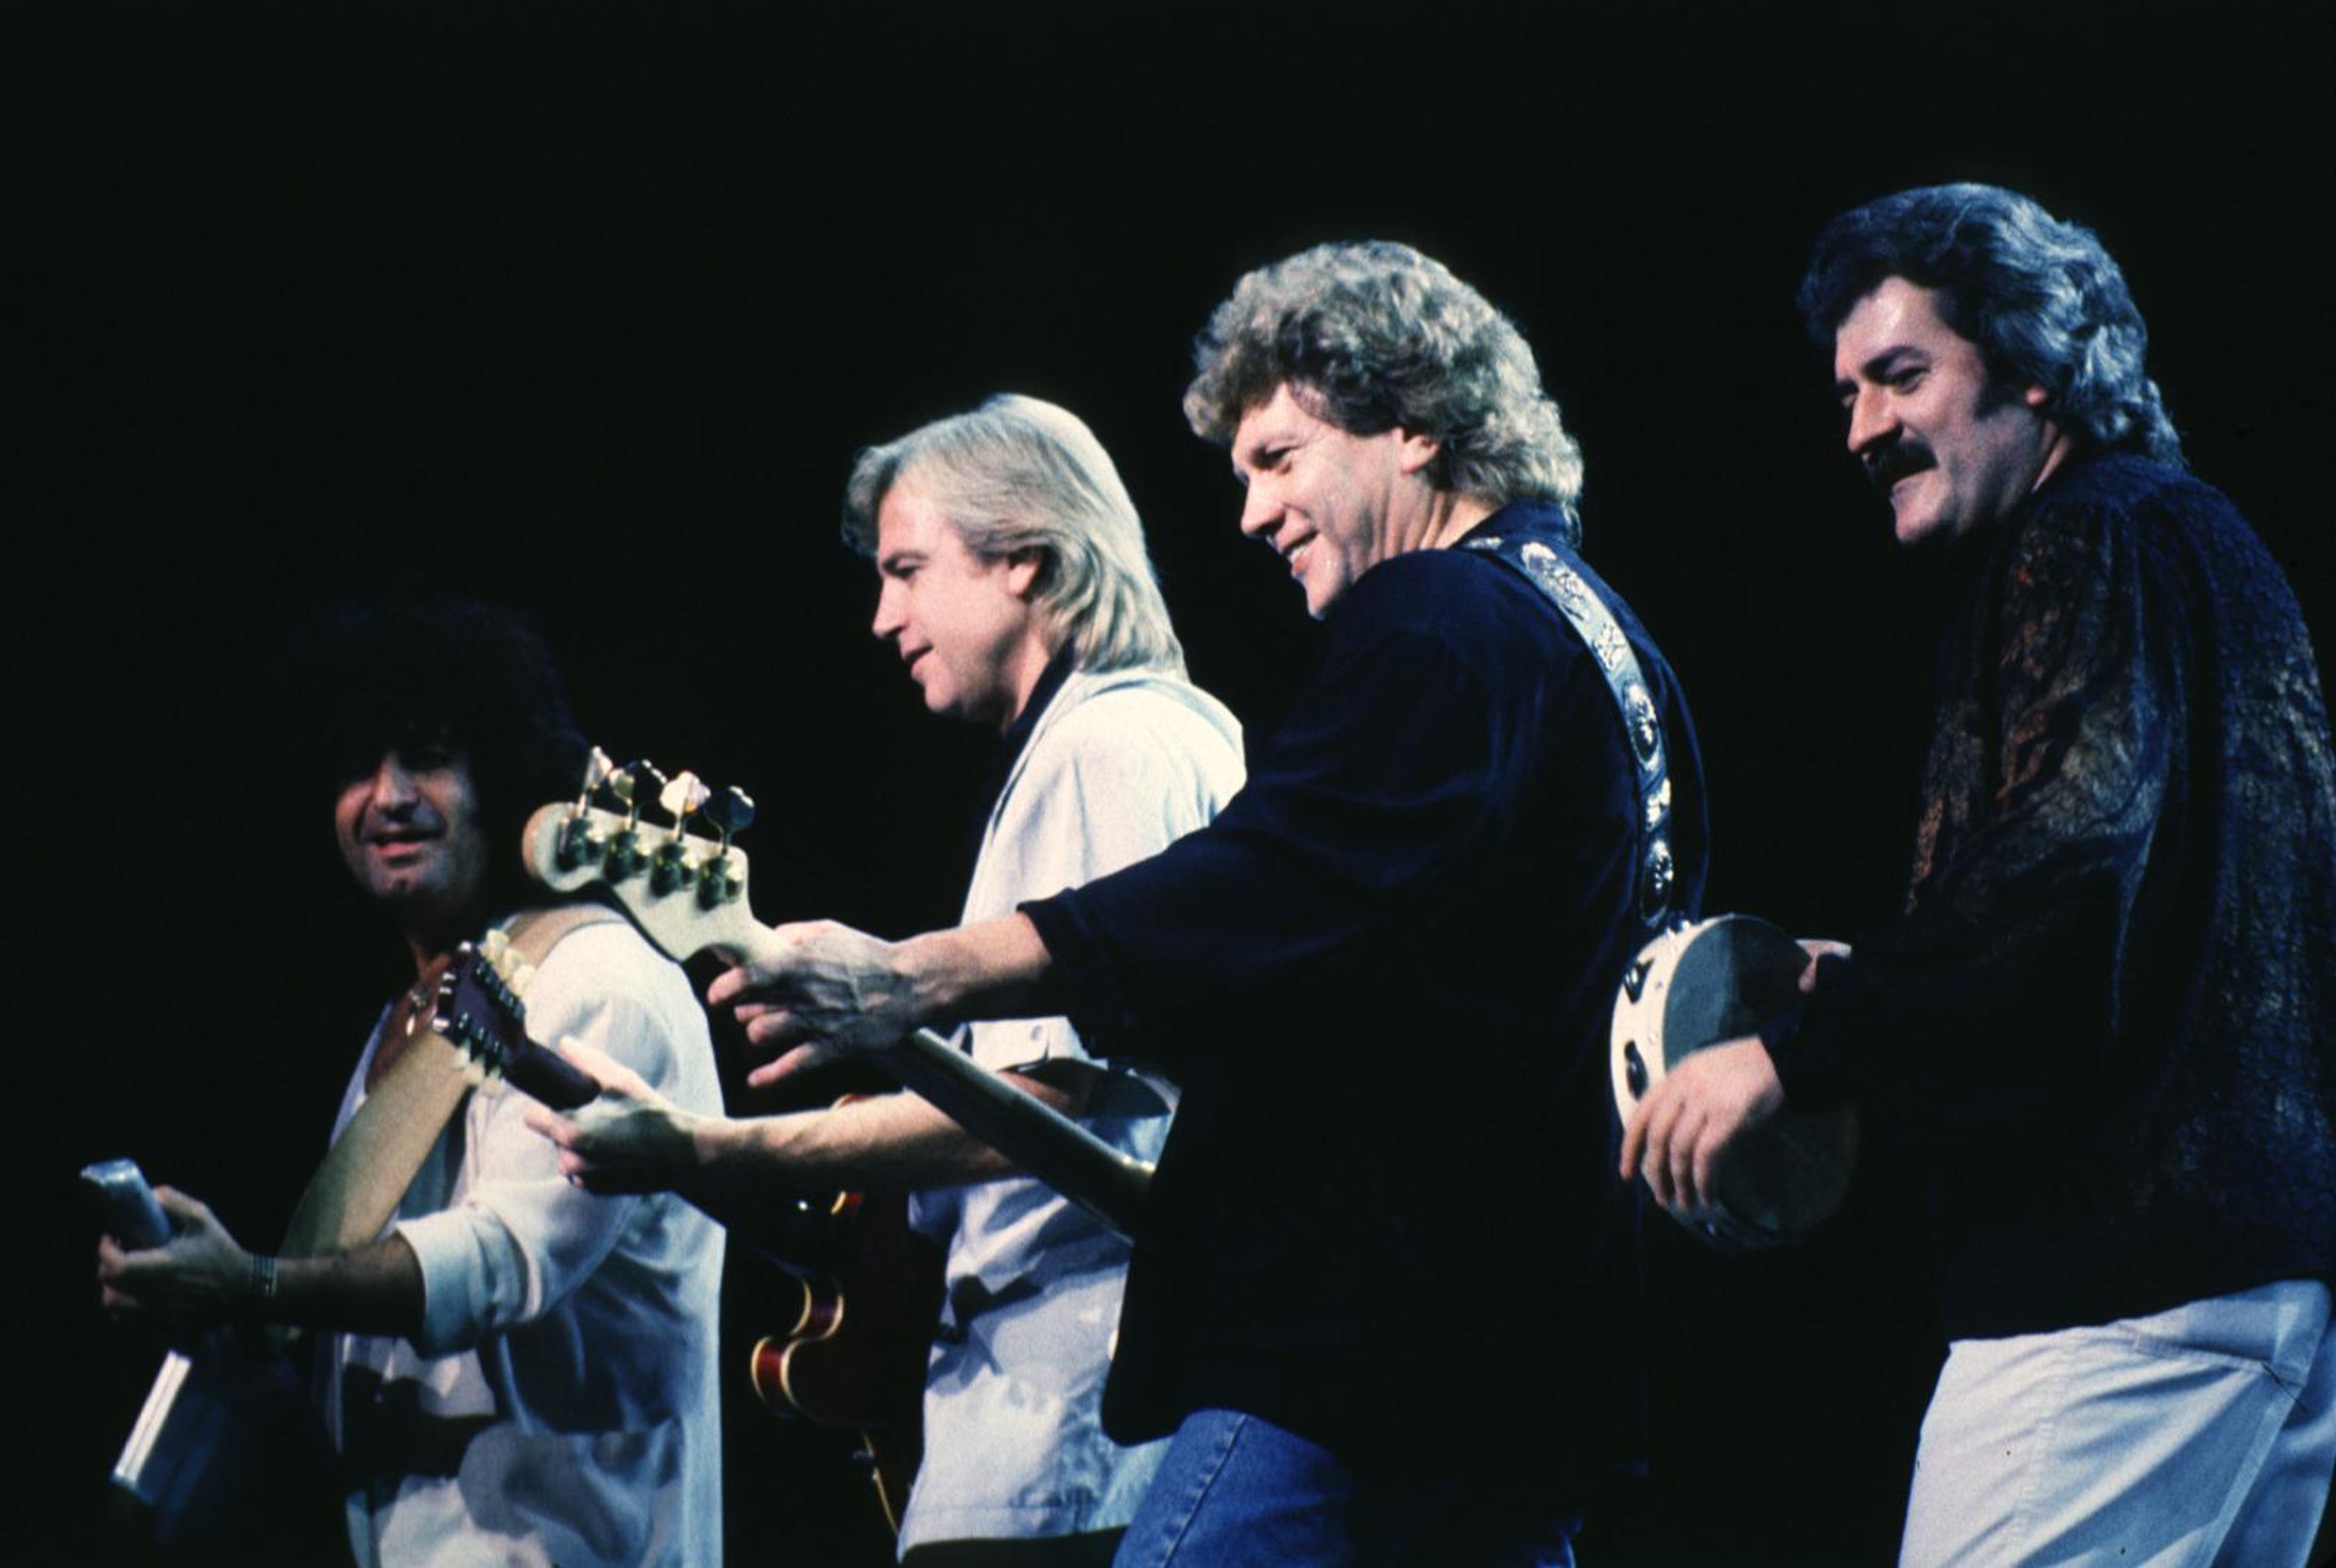 Patrick Moraz, Justin Hayward, John Lodge and Ray Thomas of The Moody Blues (Photo by Patti Ouderkirk/WireImage)